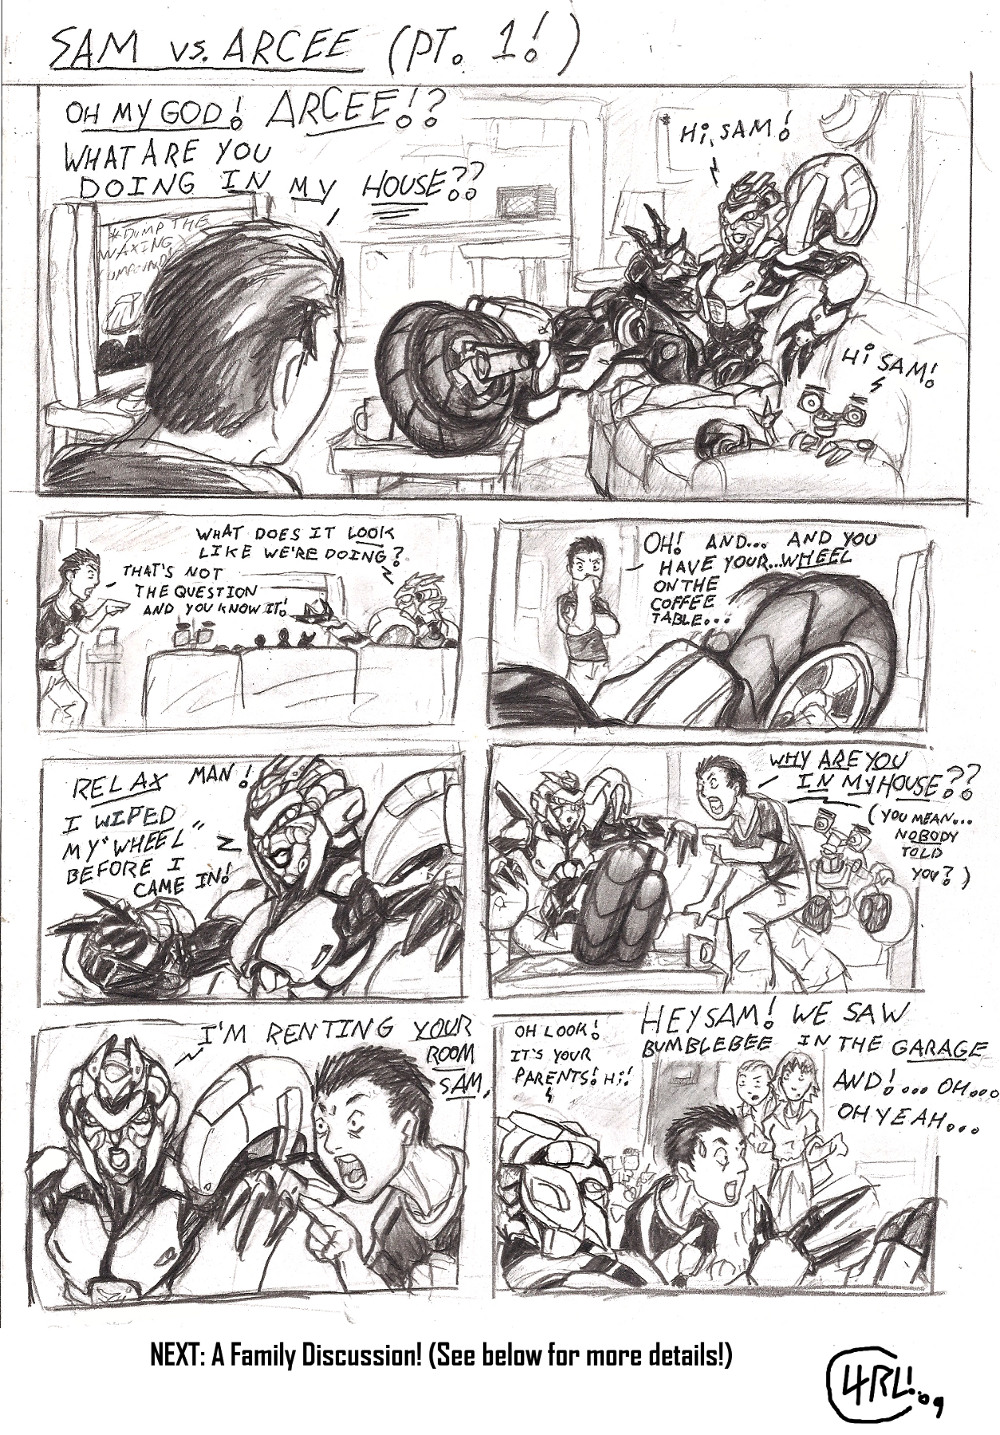 Sam_vs_Arcee_pt1_by_Th4rlDEAL.png